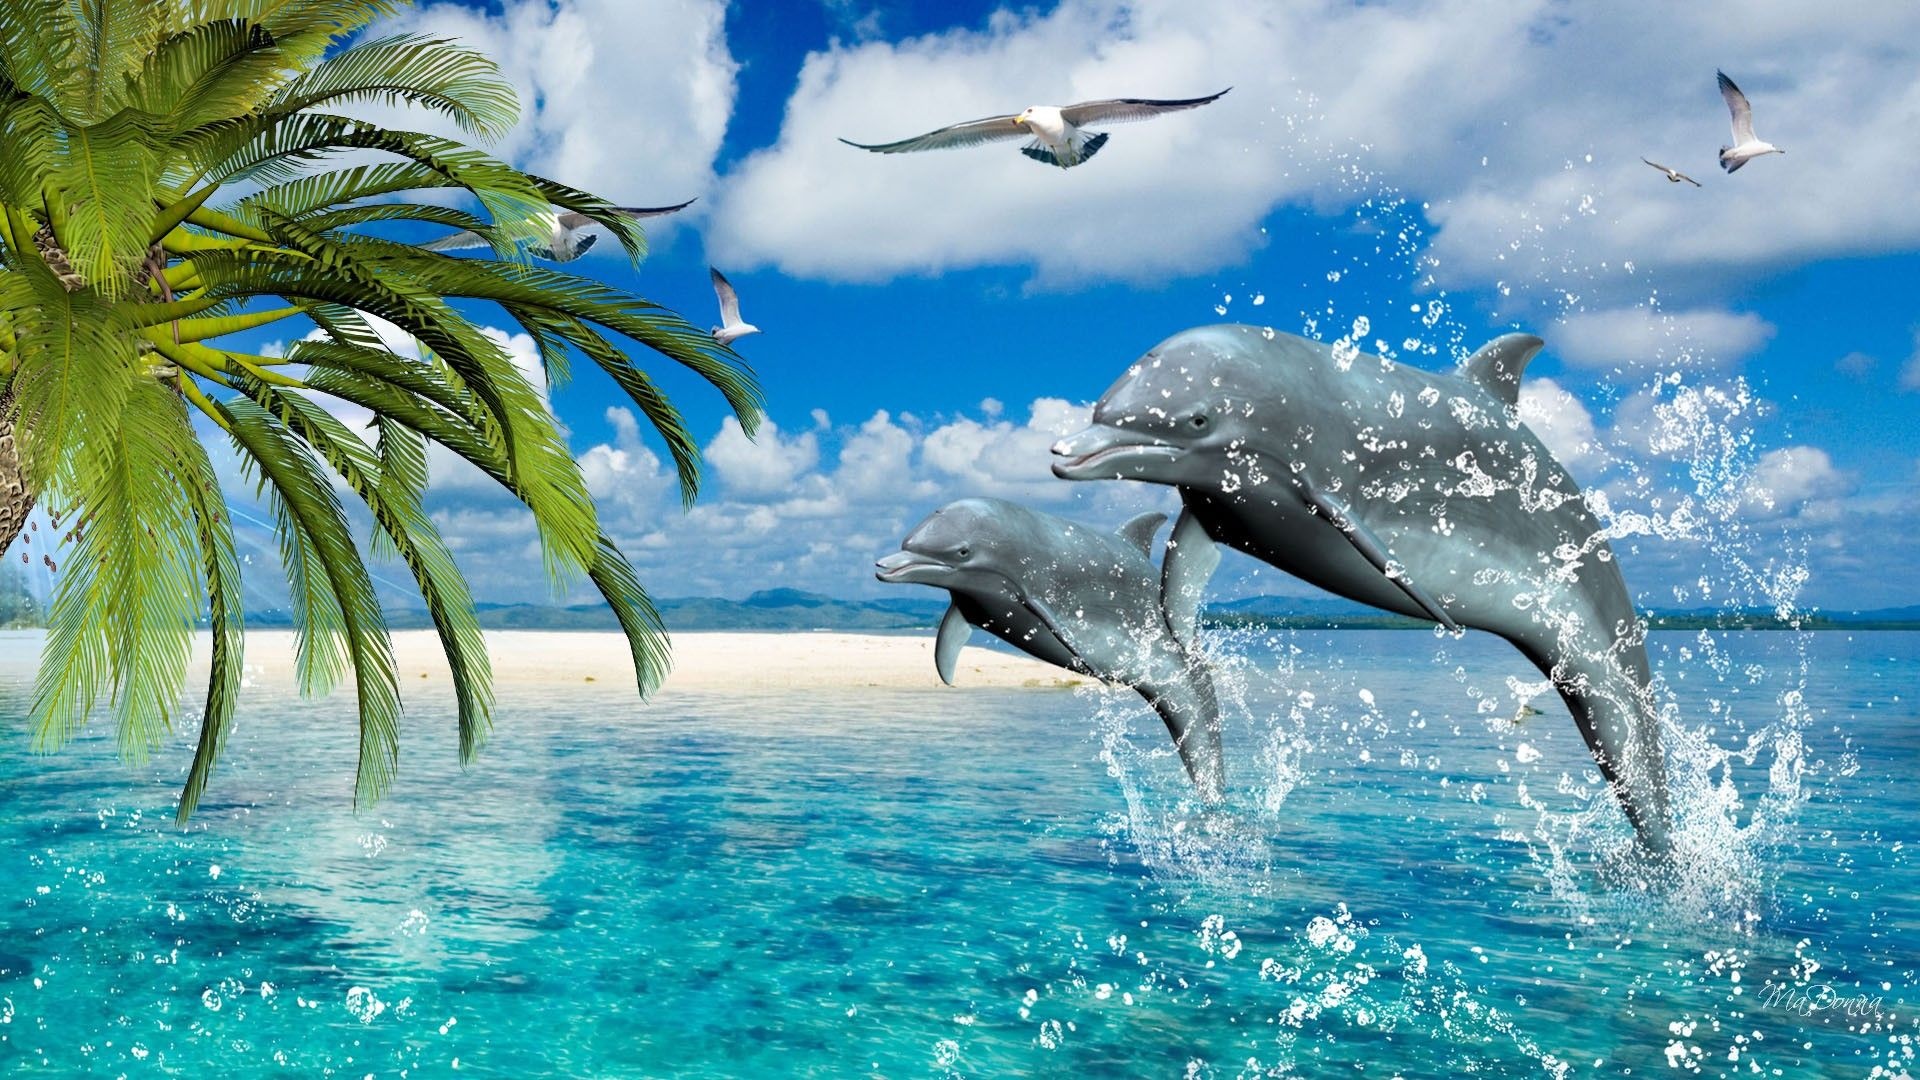 Dolphin Wallpapers Best Wallpapers Dolphin Images Dolphins Summer Beach Wallpaper